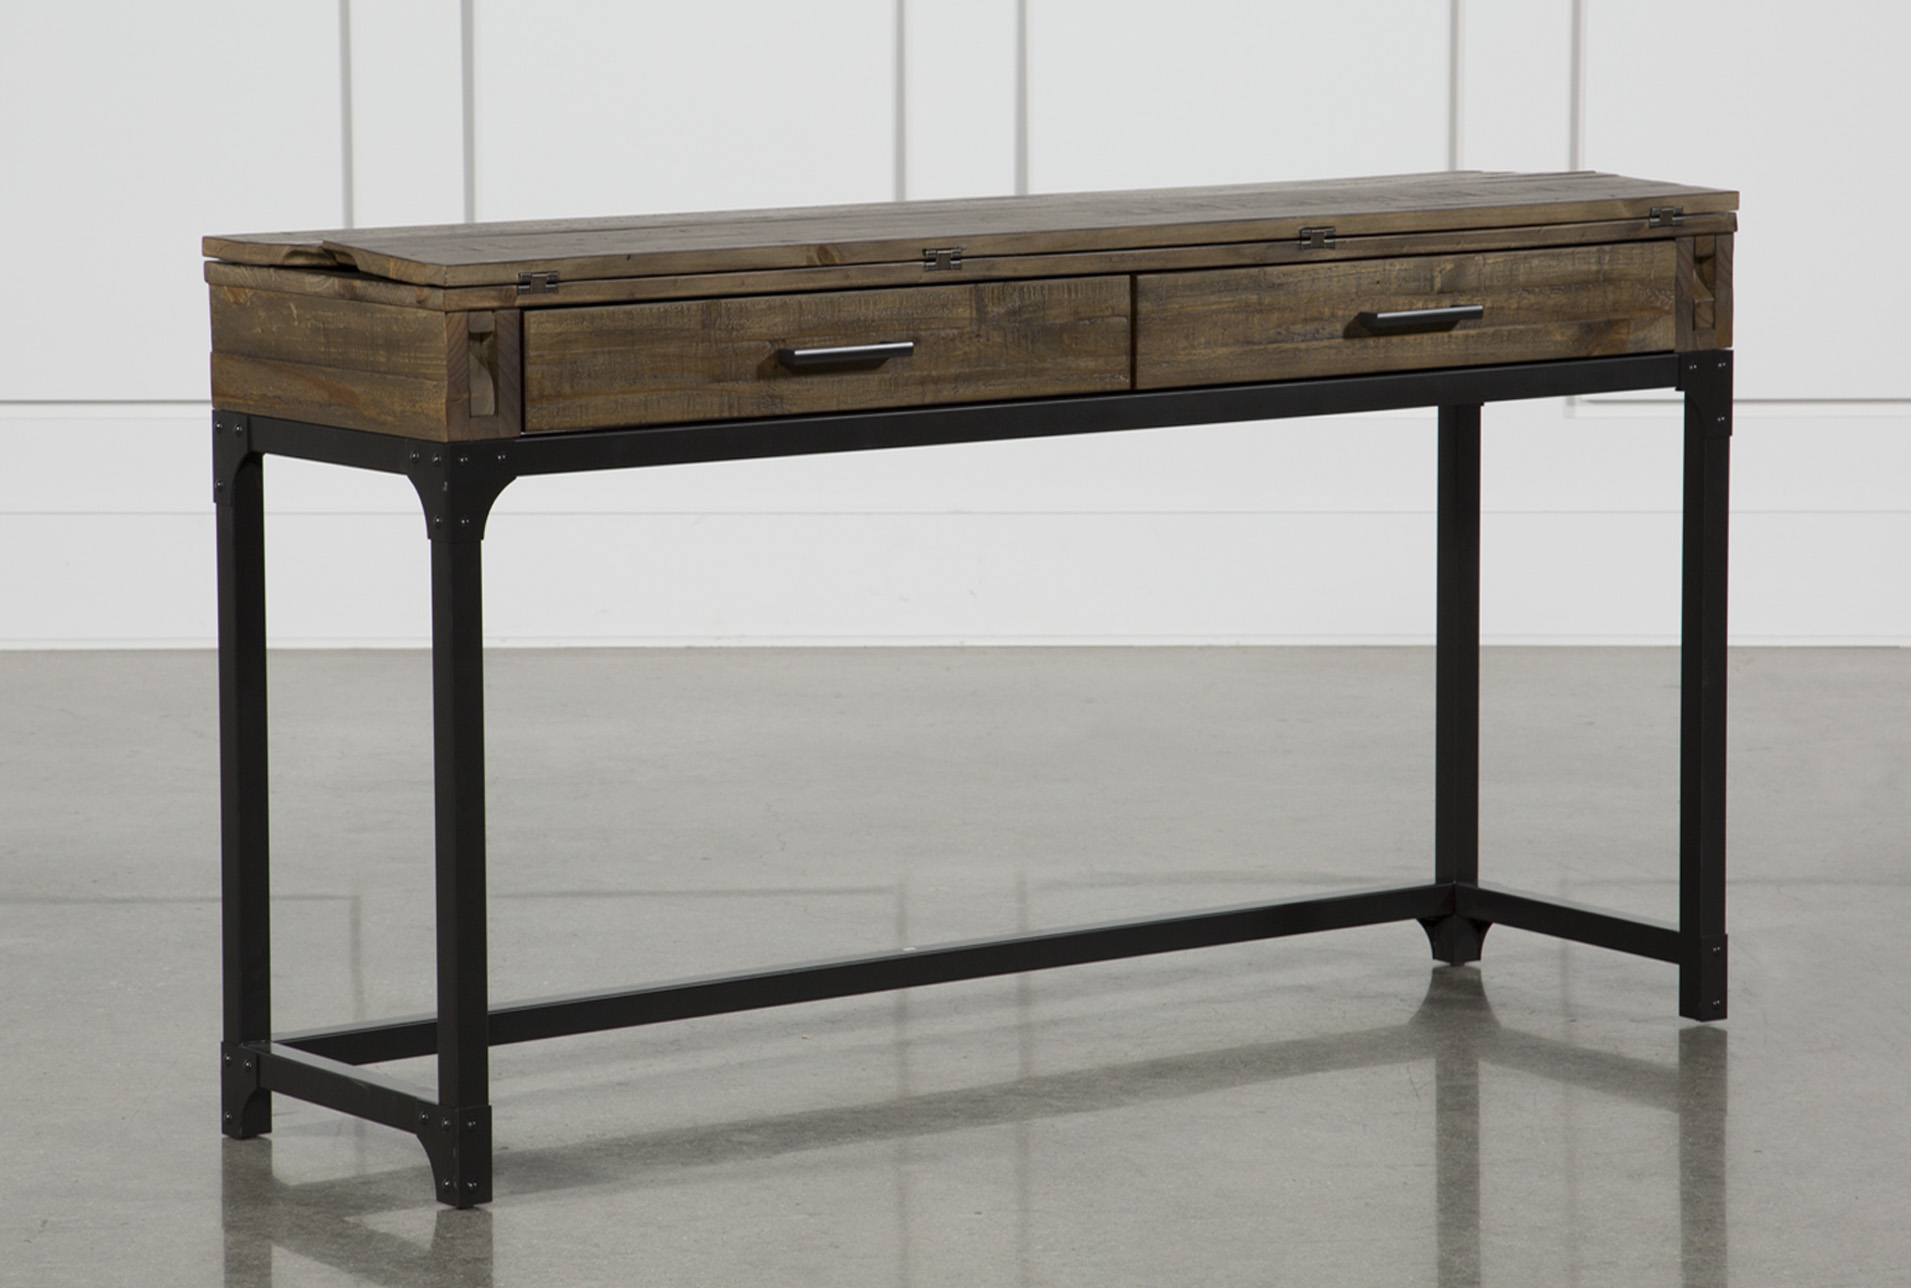 Foundry Flip-Top Sofa Table (Qty: 1) has been successfully added to your  Cart.